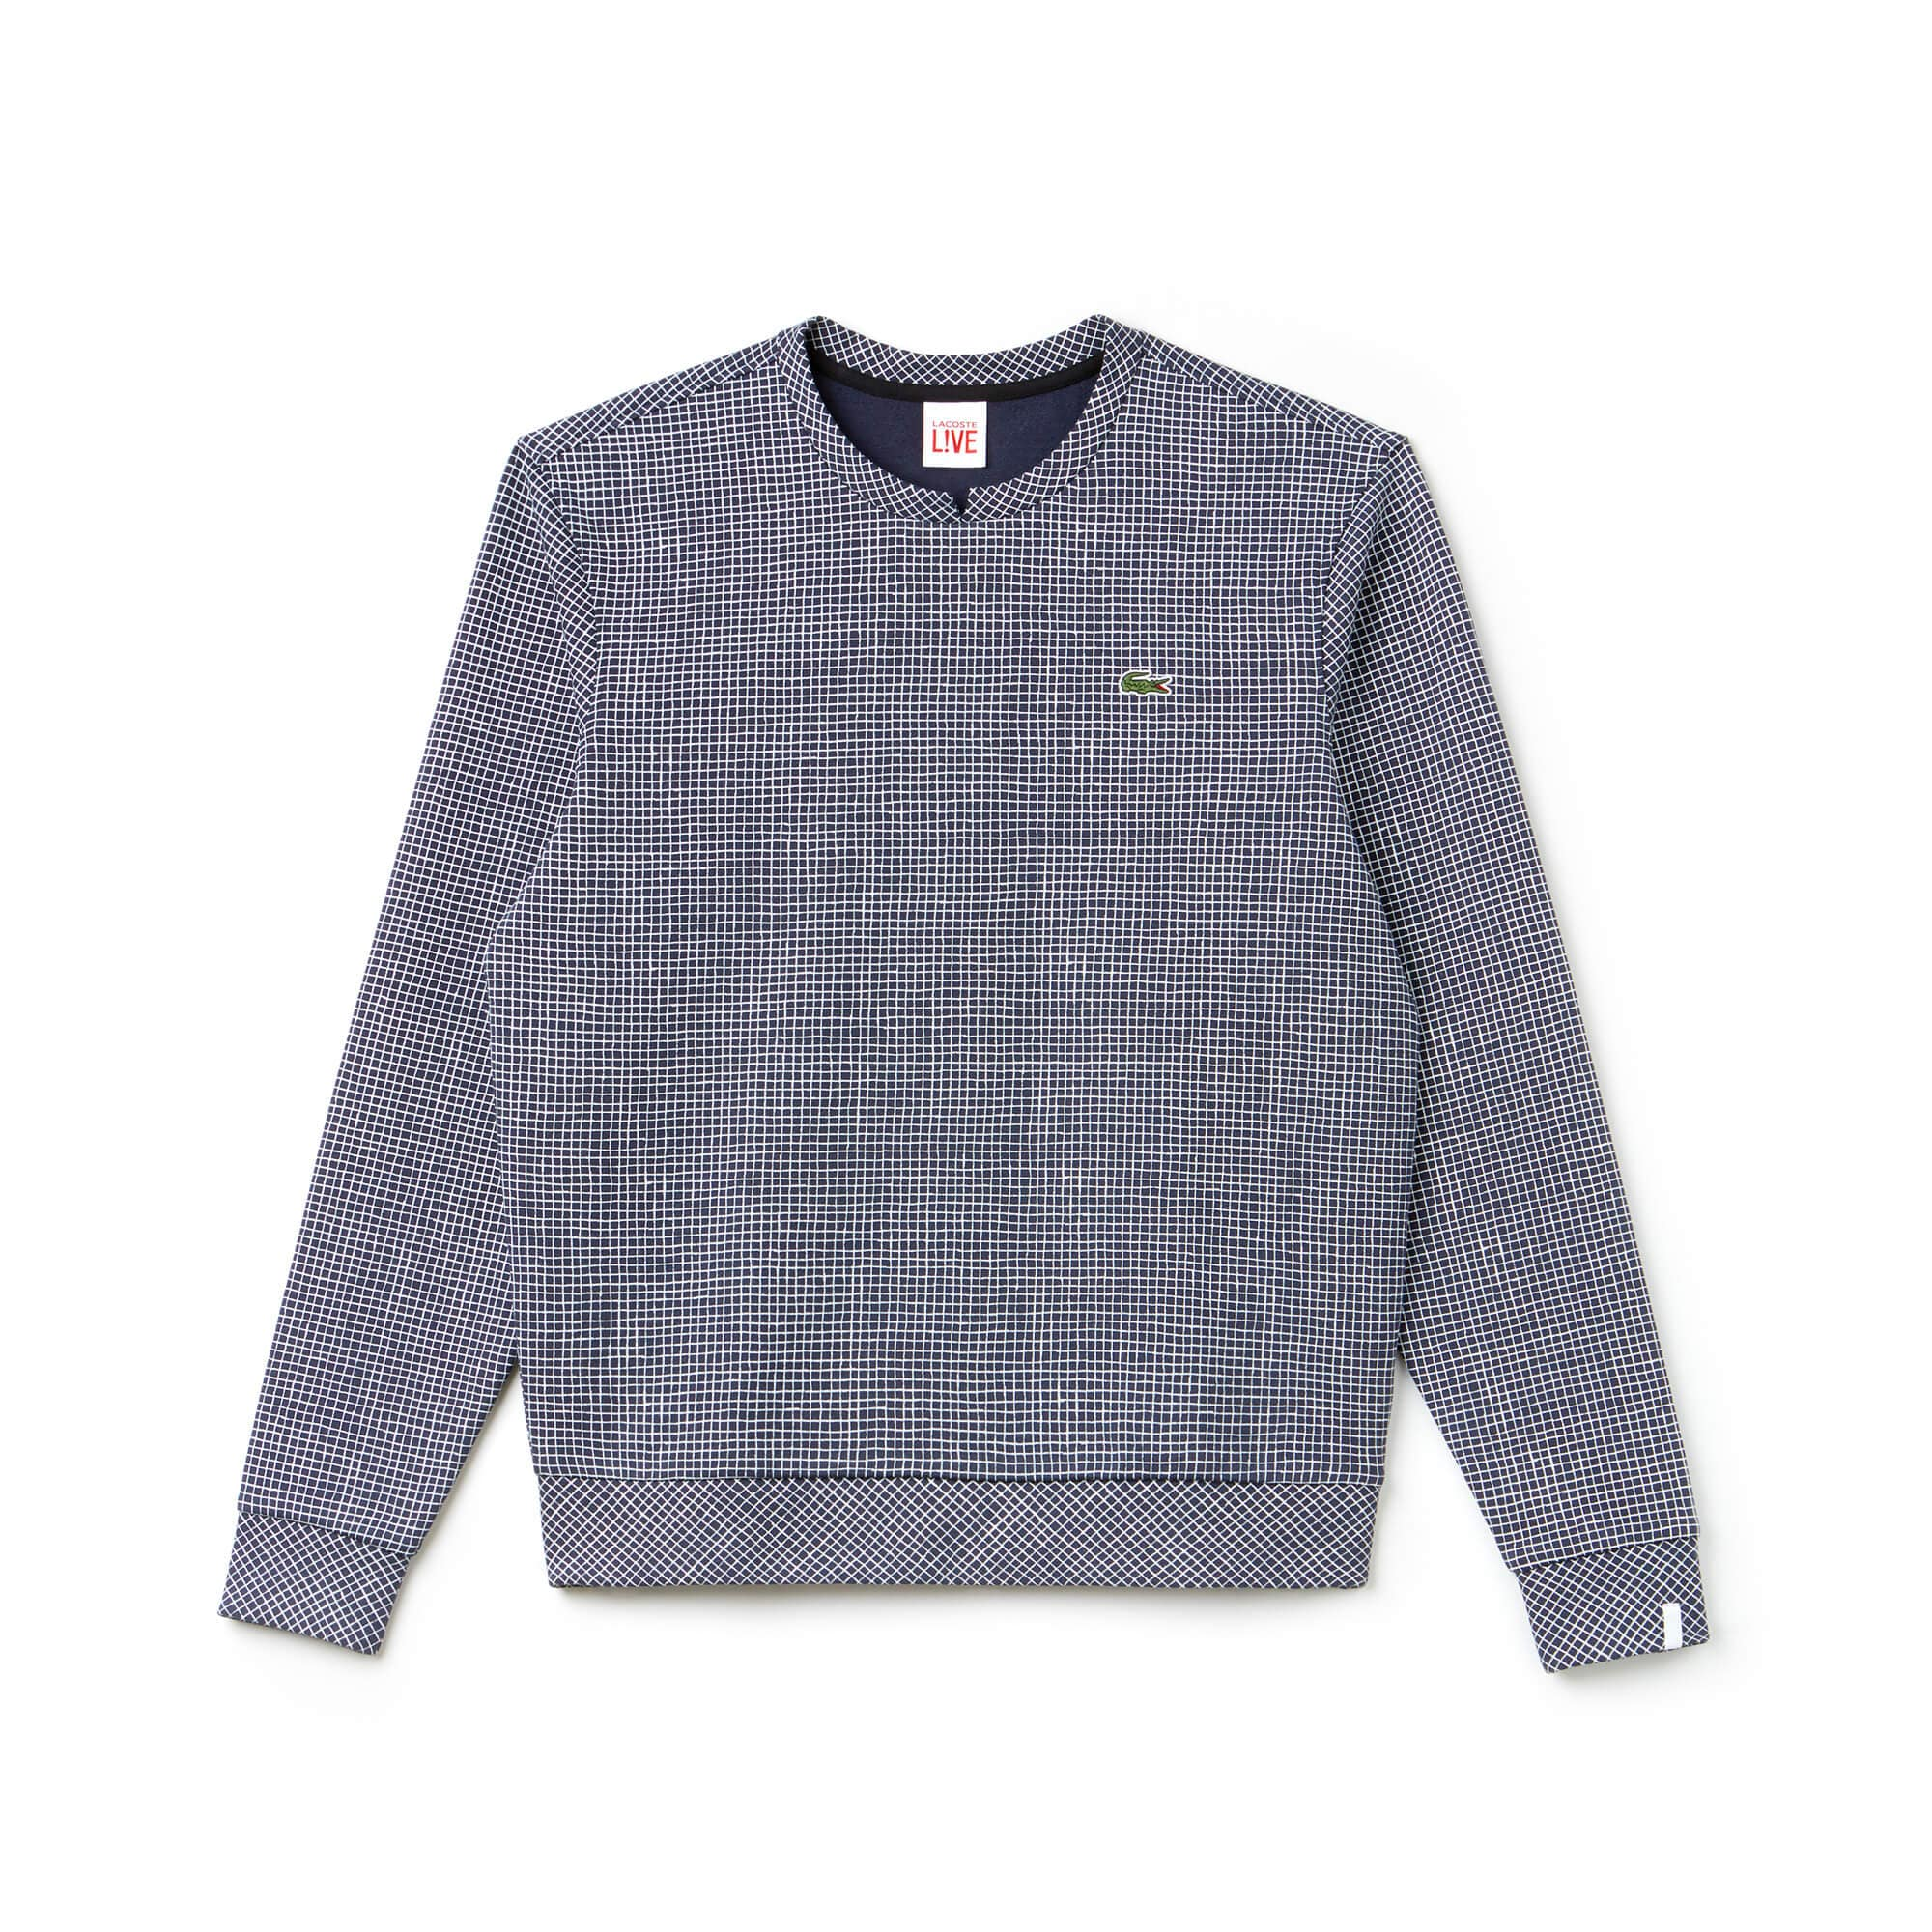 Men's Lacoste LIVE Crew Neck Mini Check Fleece Sweatshirt